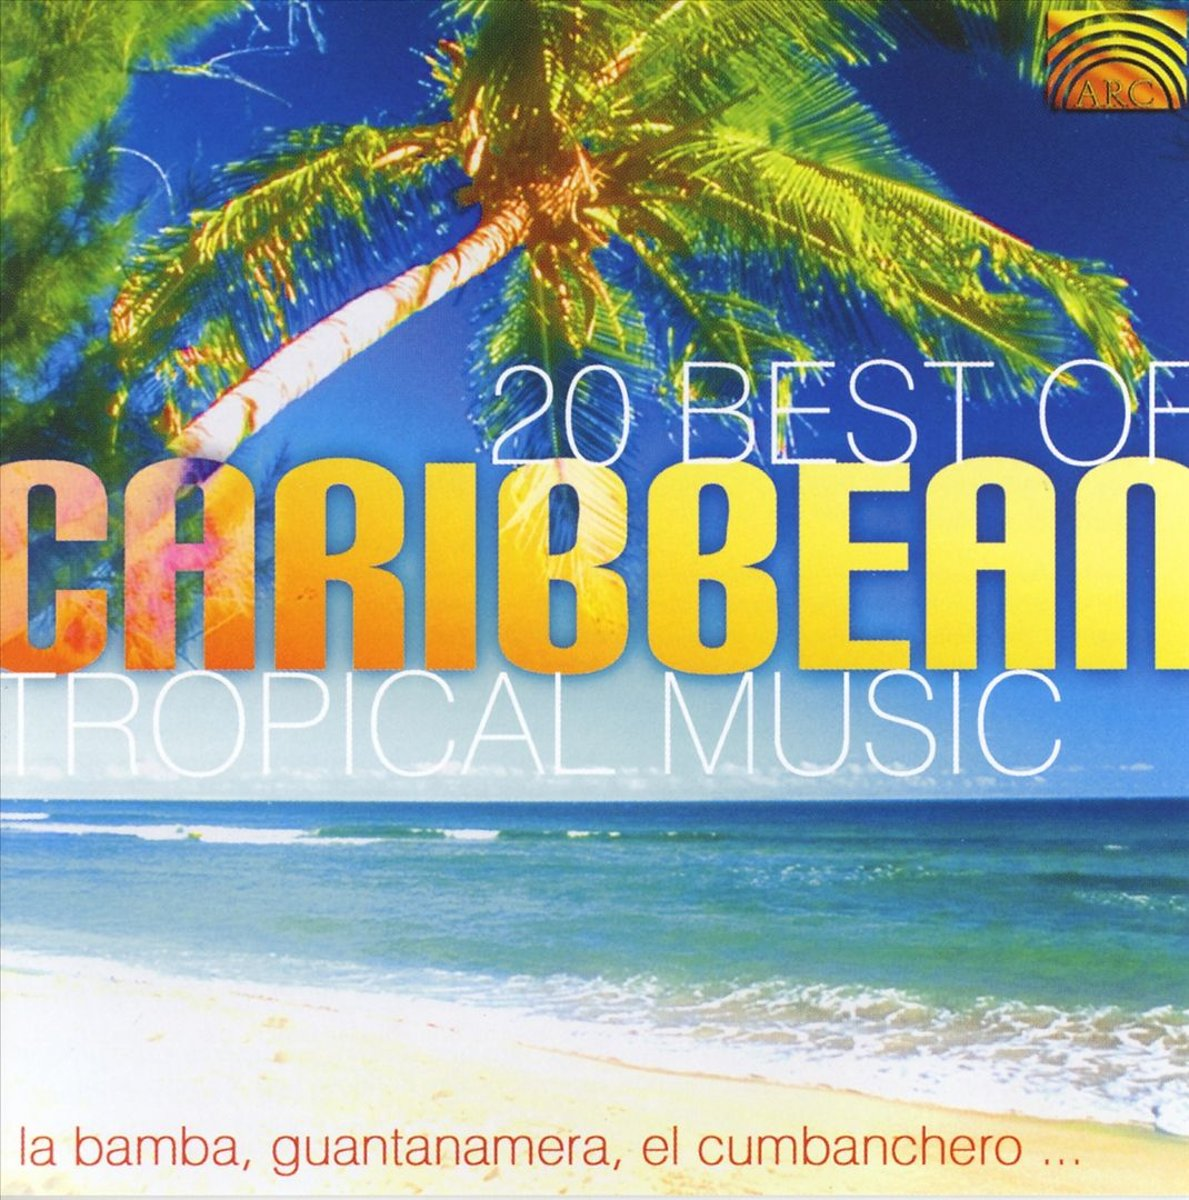 20 Best Of Caribbean Tropical Music kopen